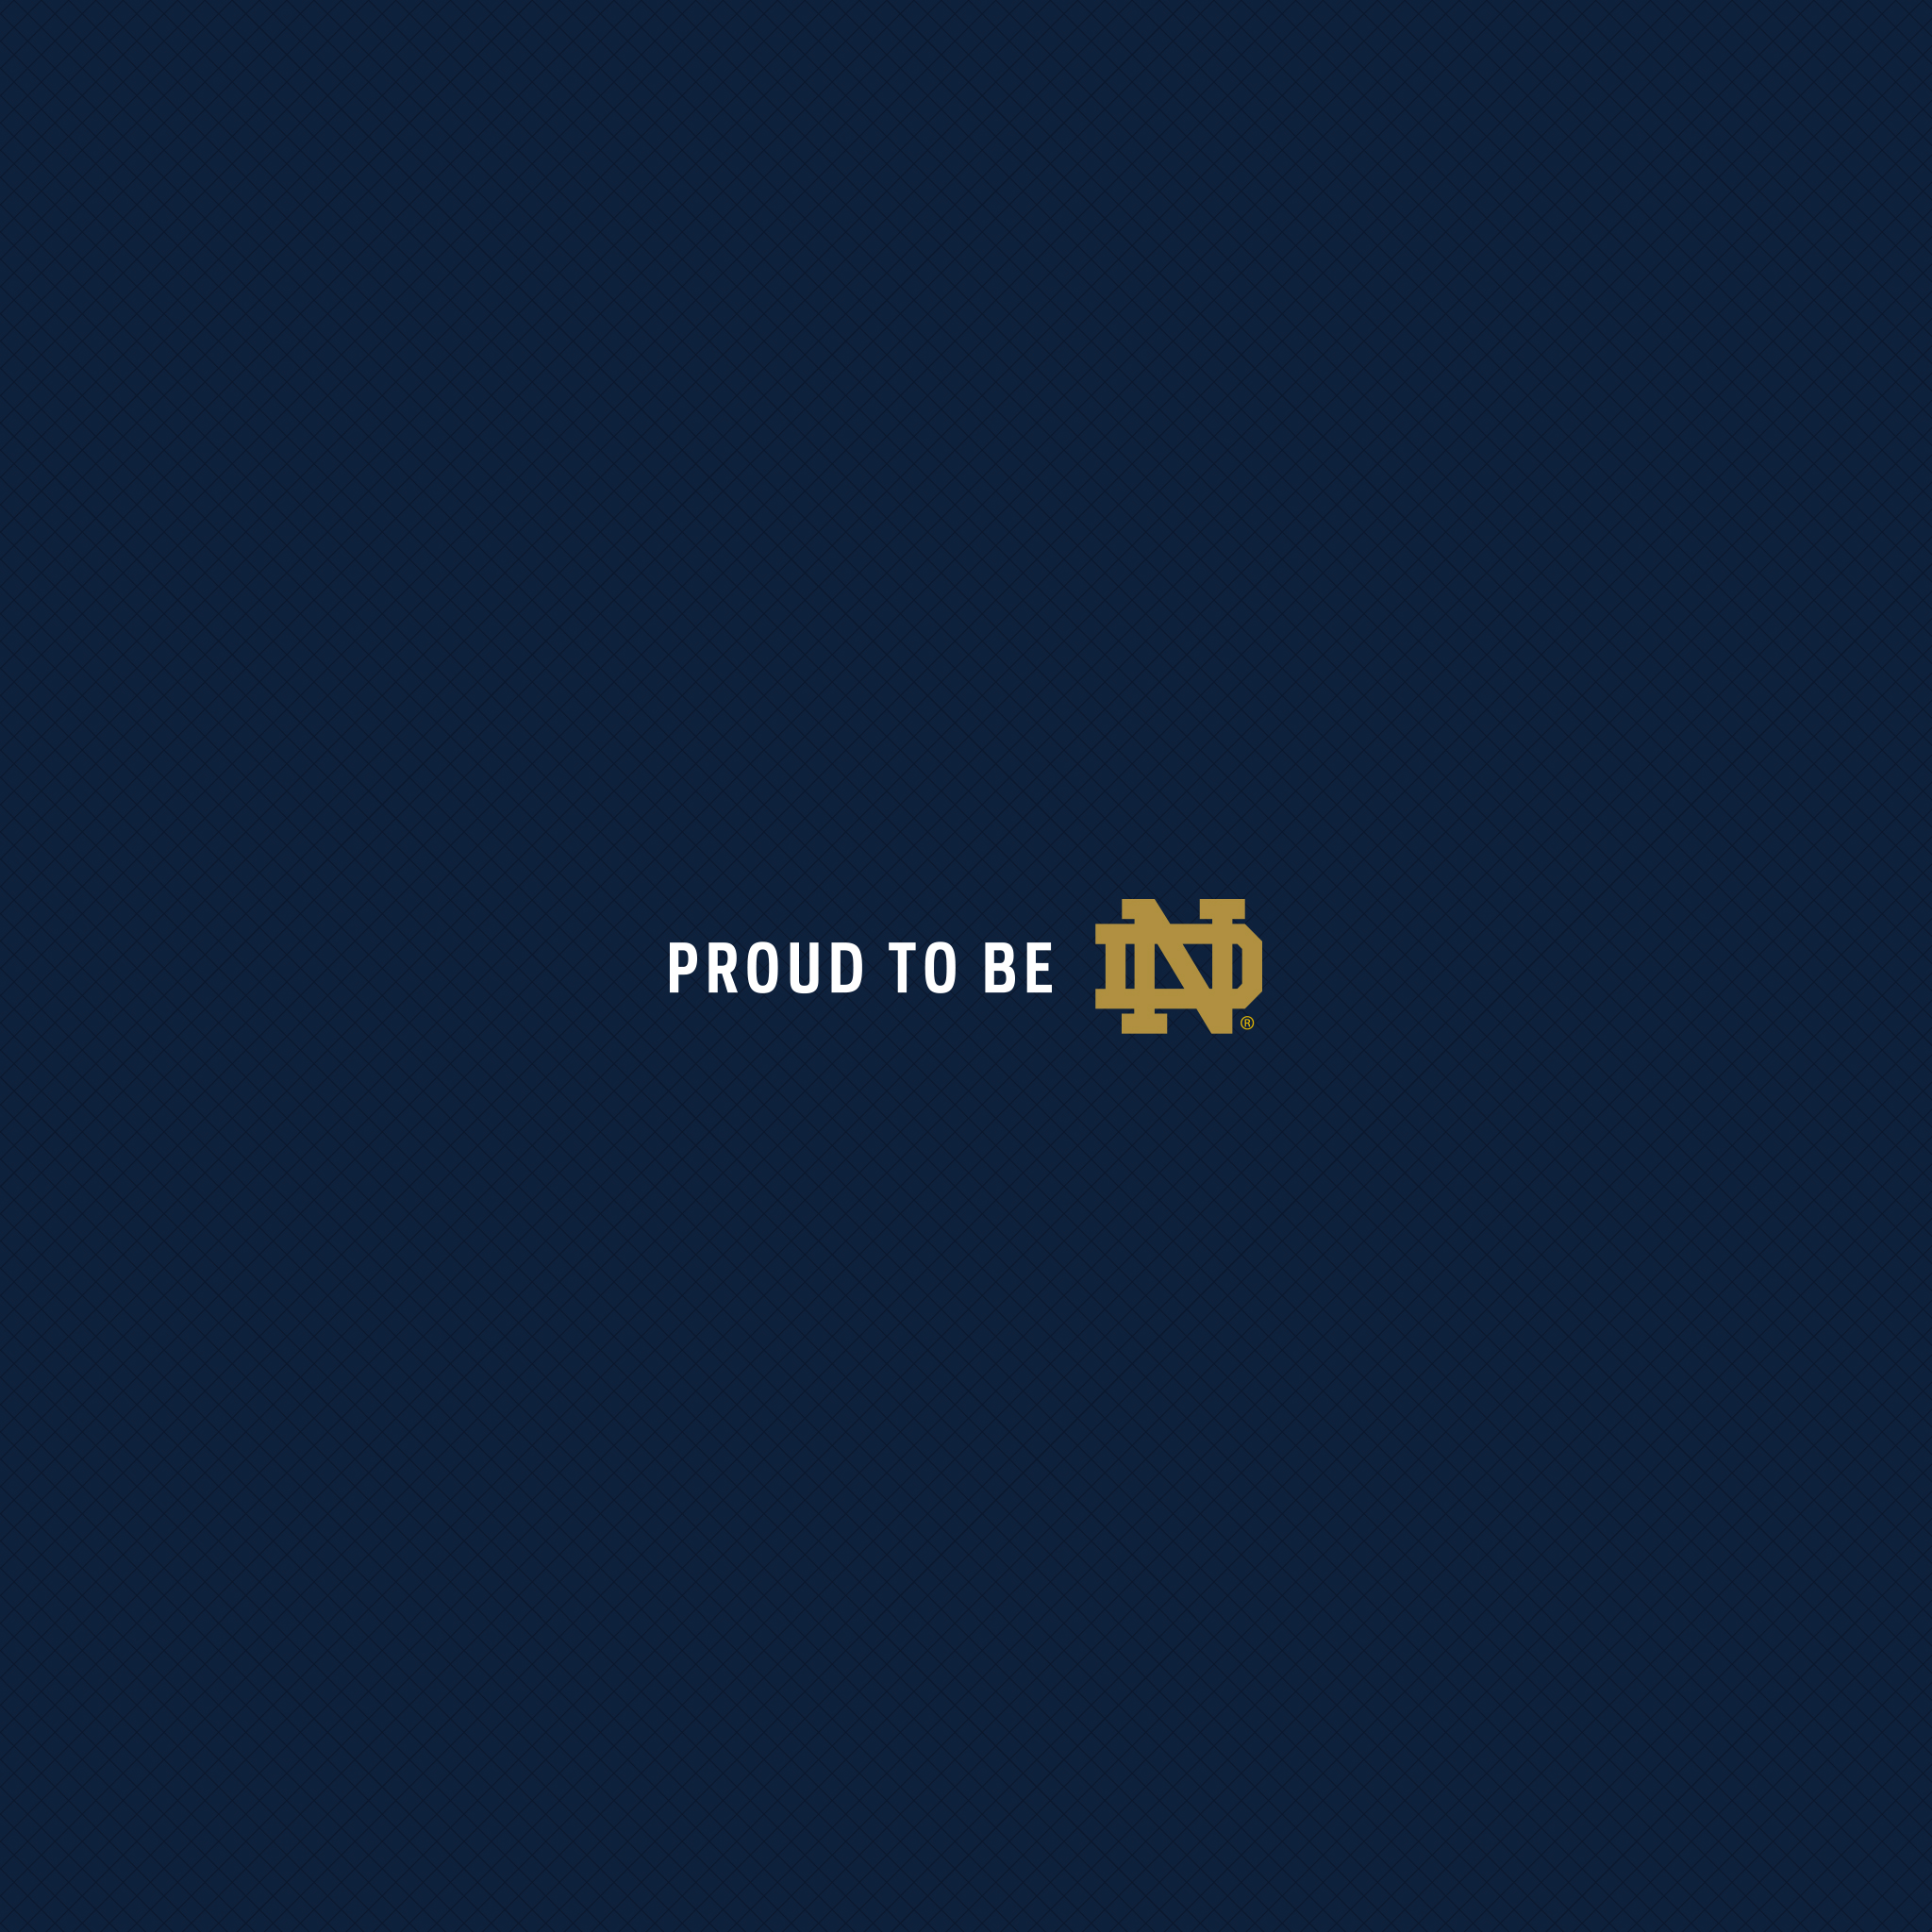 Backgrounds Proud to Be ND University of Notre Dame 2048x2048